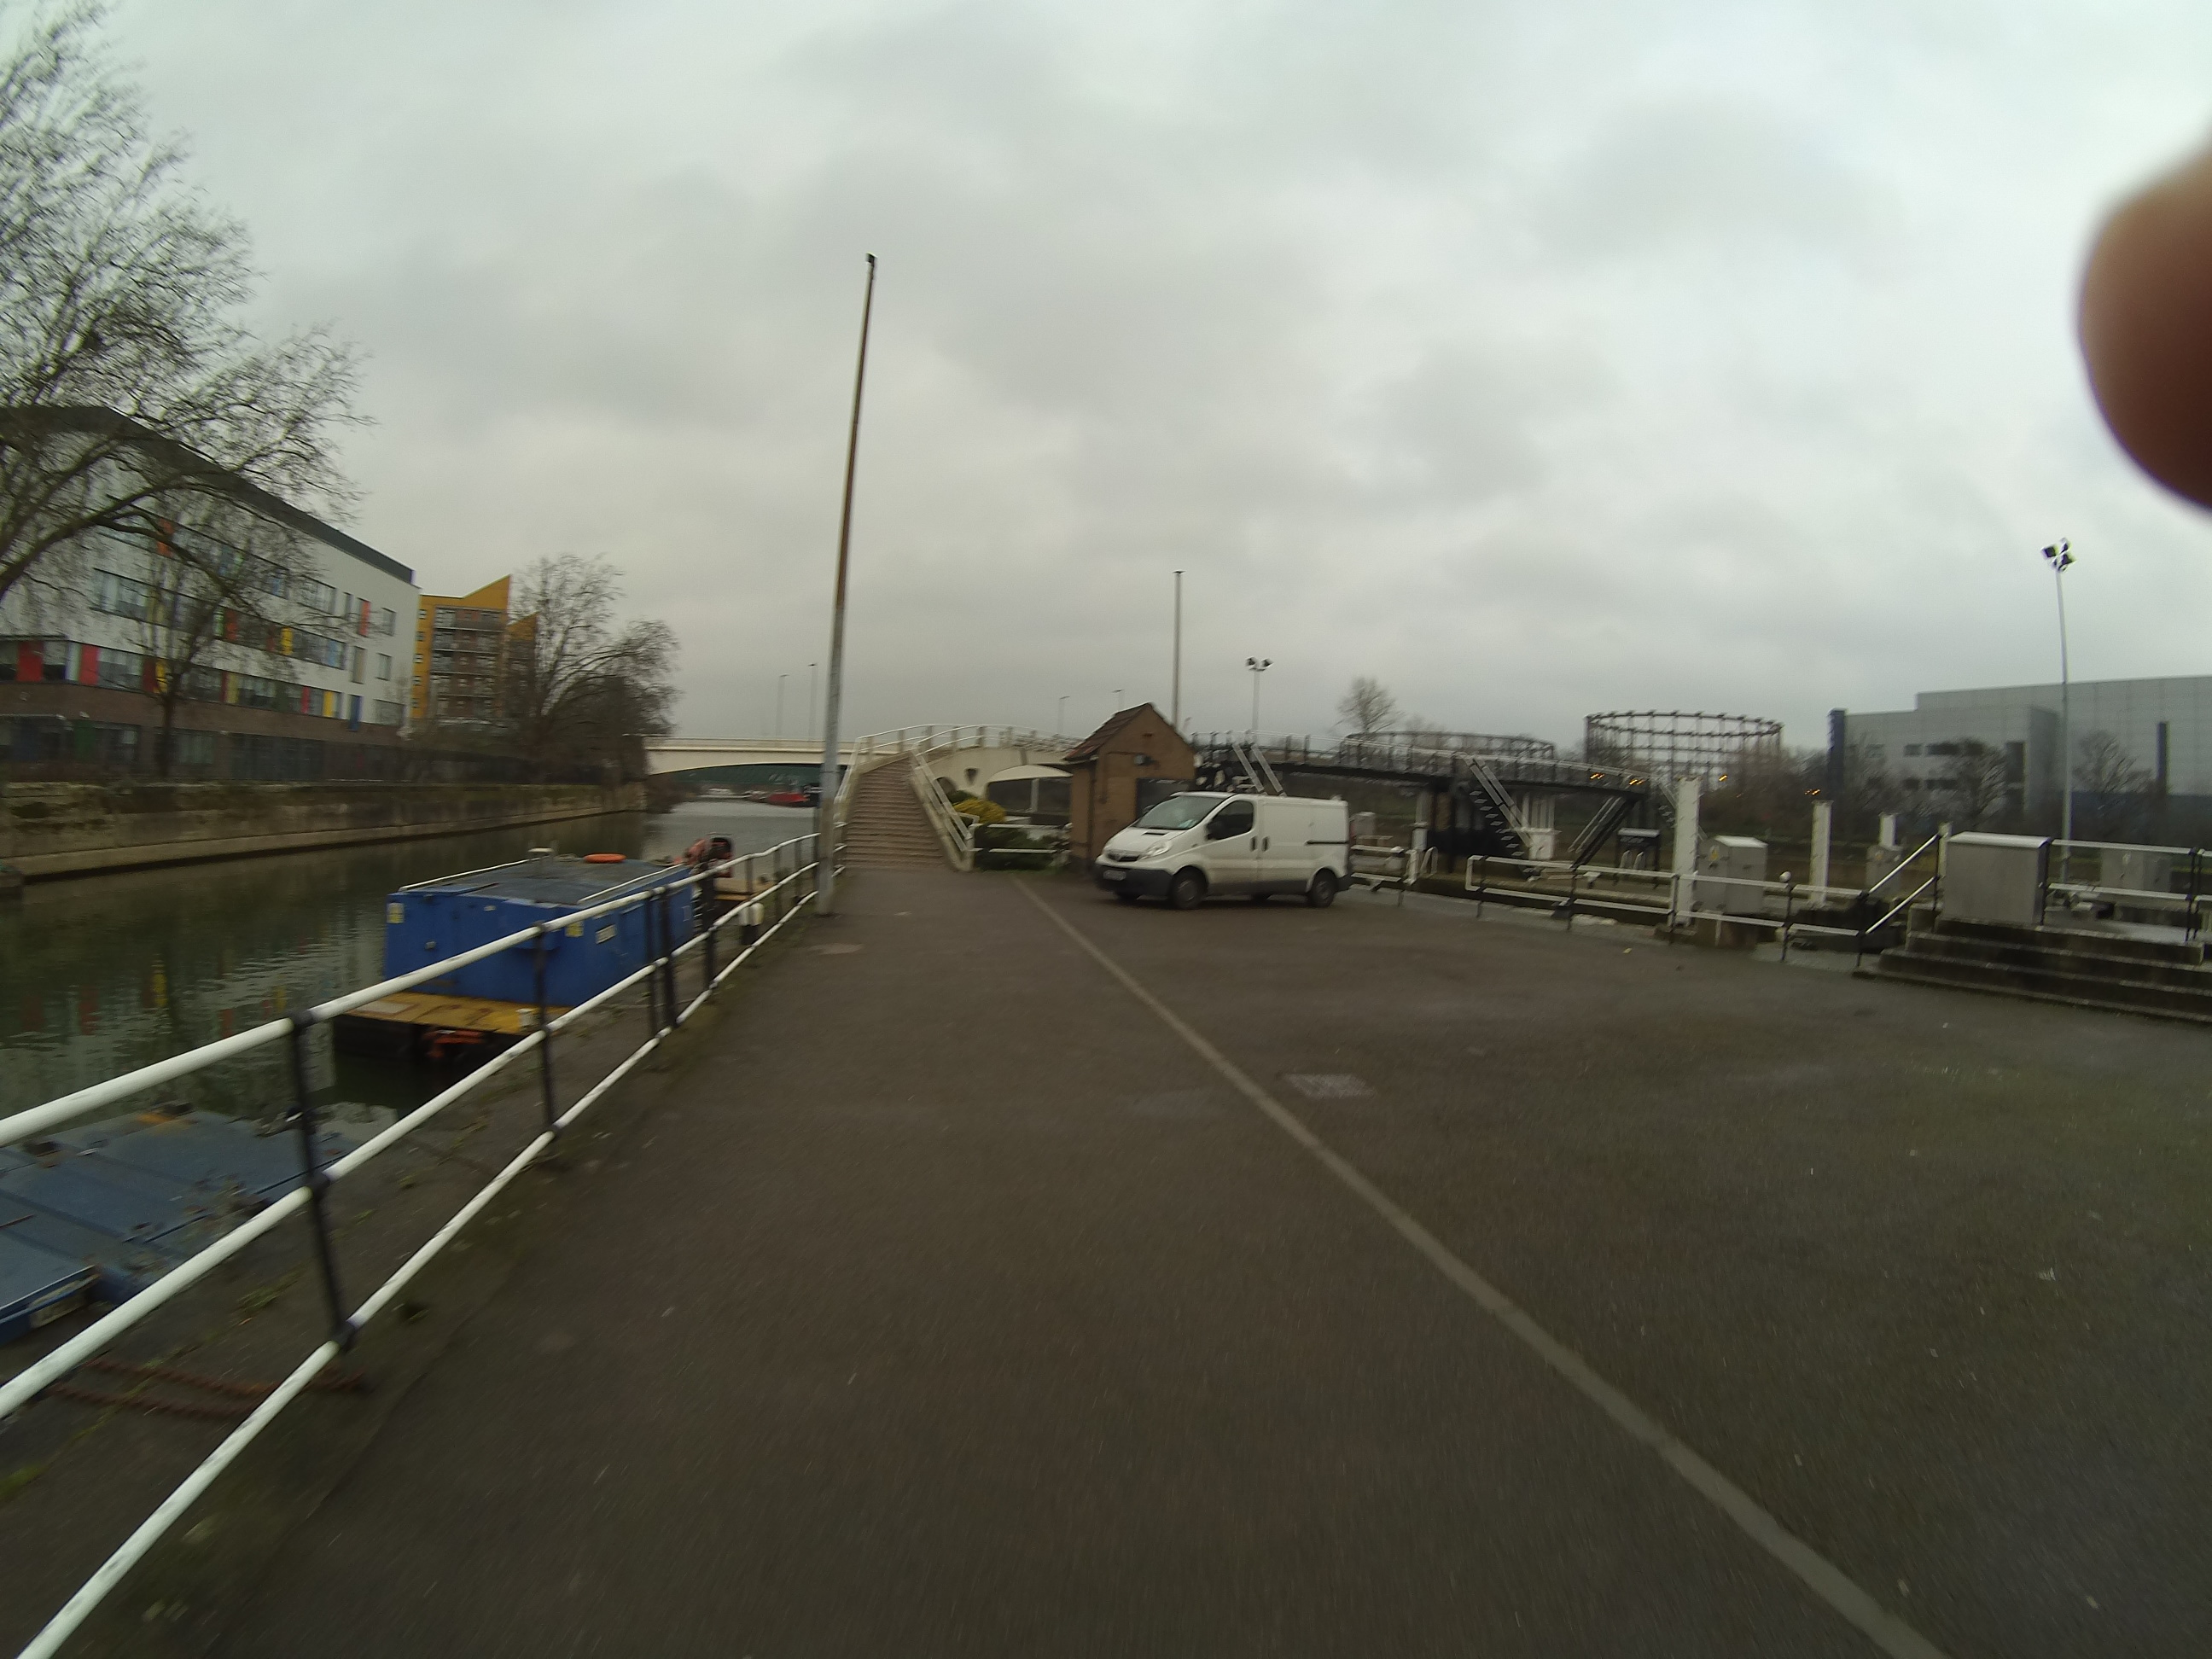 Beside a canal in North West London3